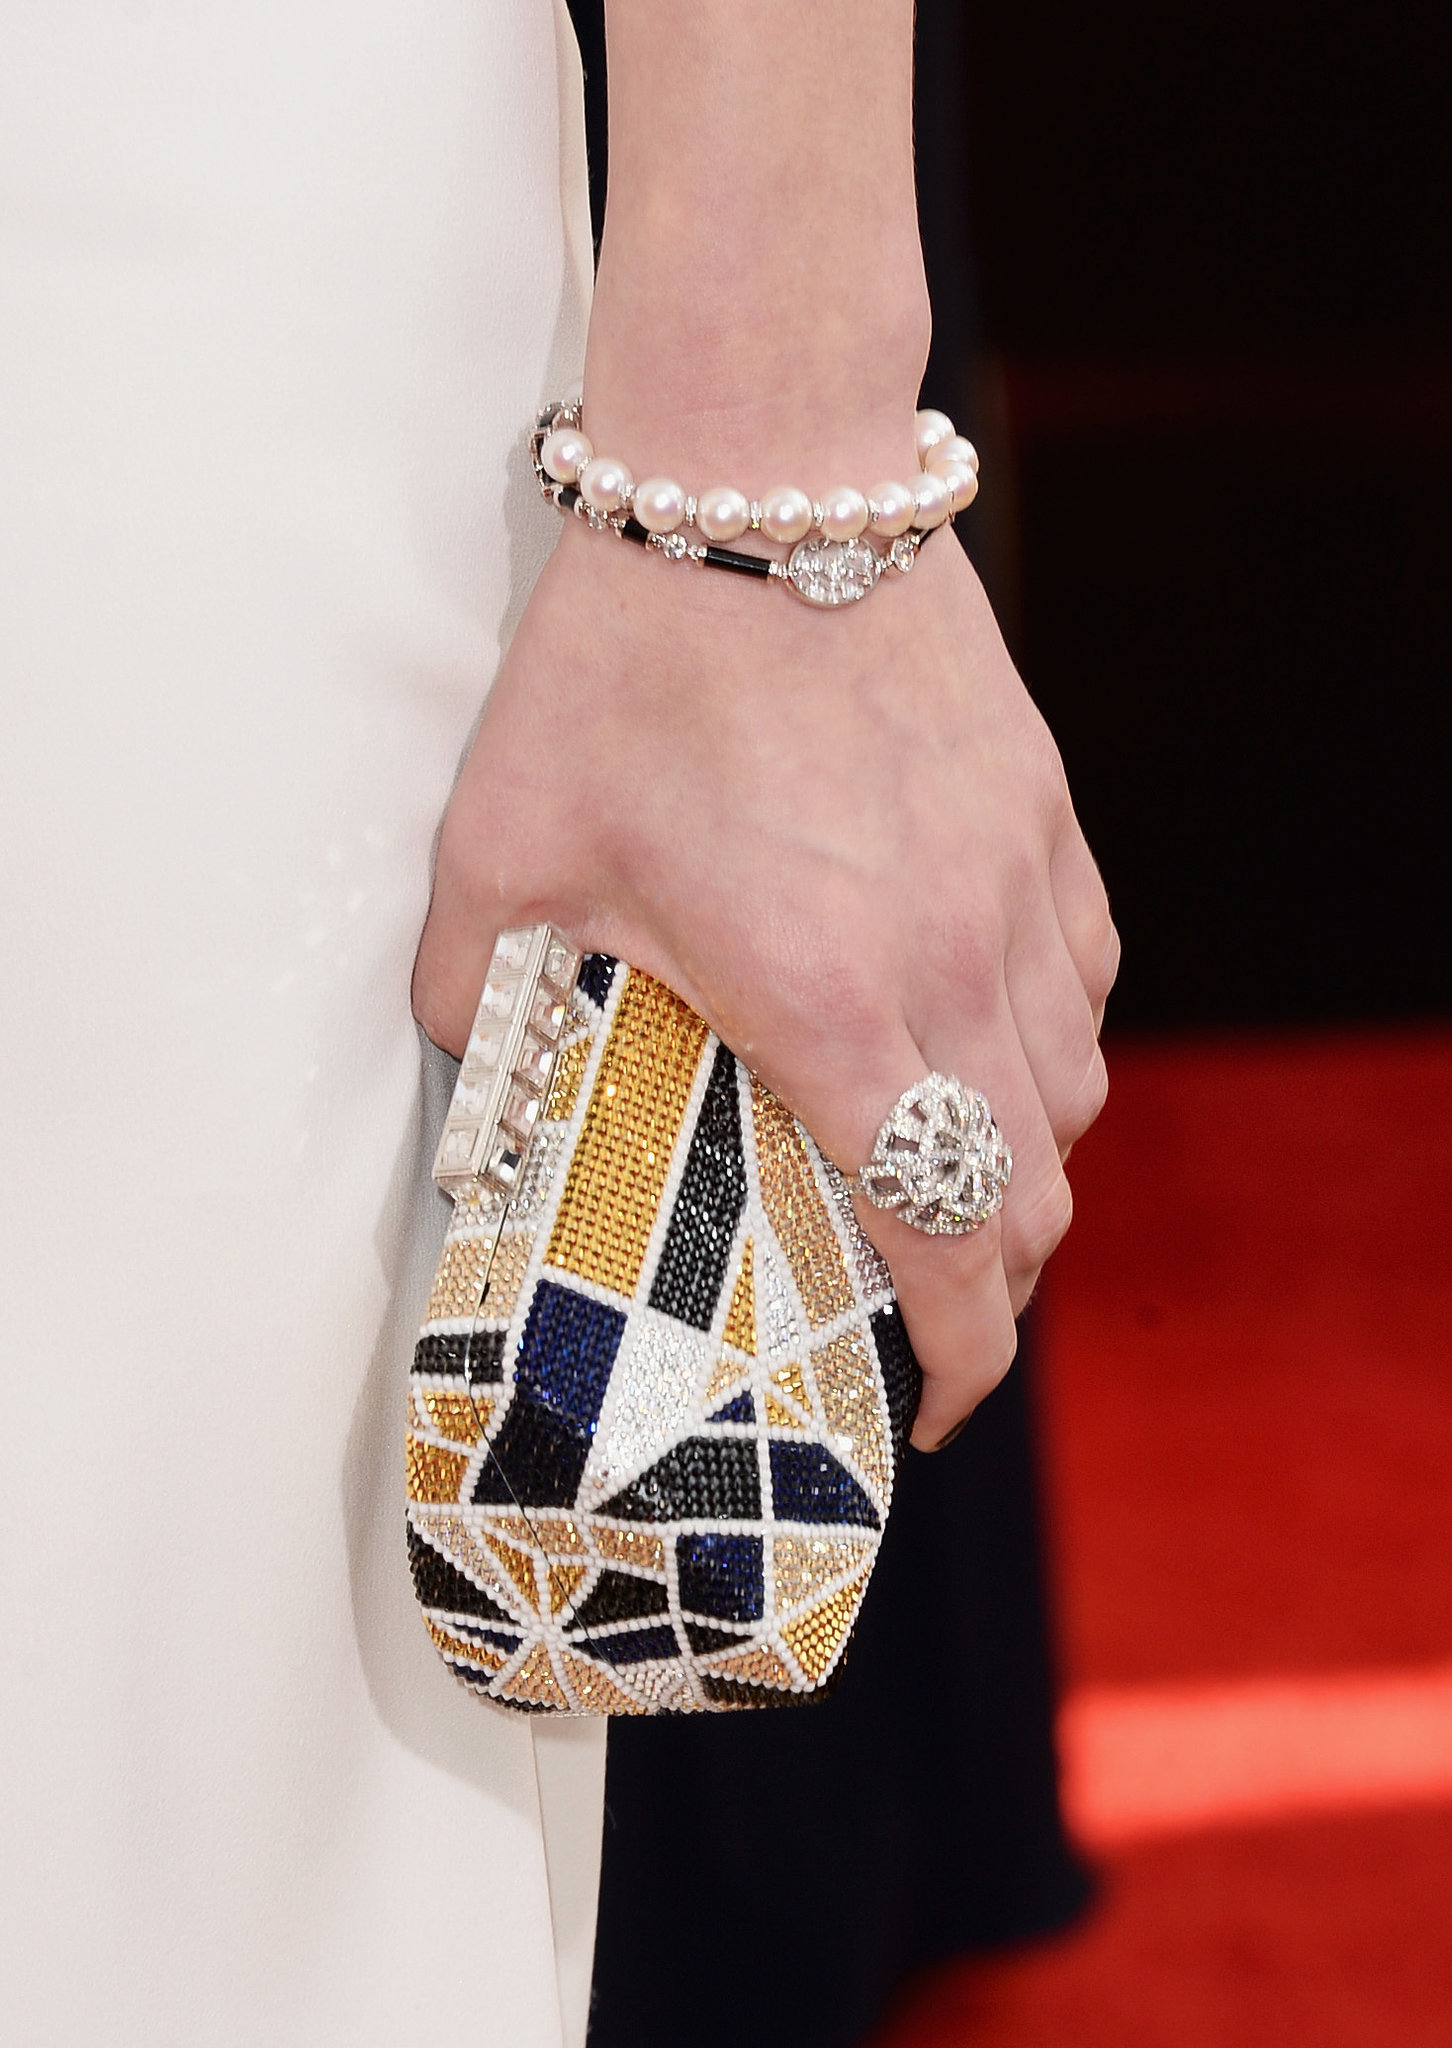 Laura Carmichael's multicolored minaudière and Chanel fine jewelry ring and bracelet were perfectly matched.